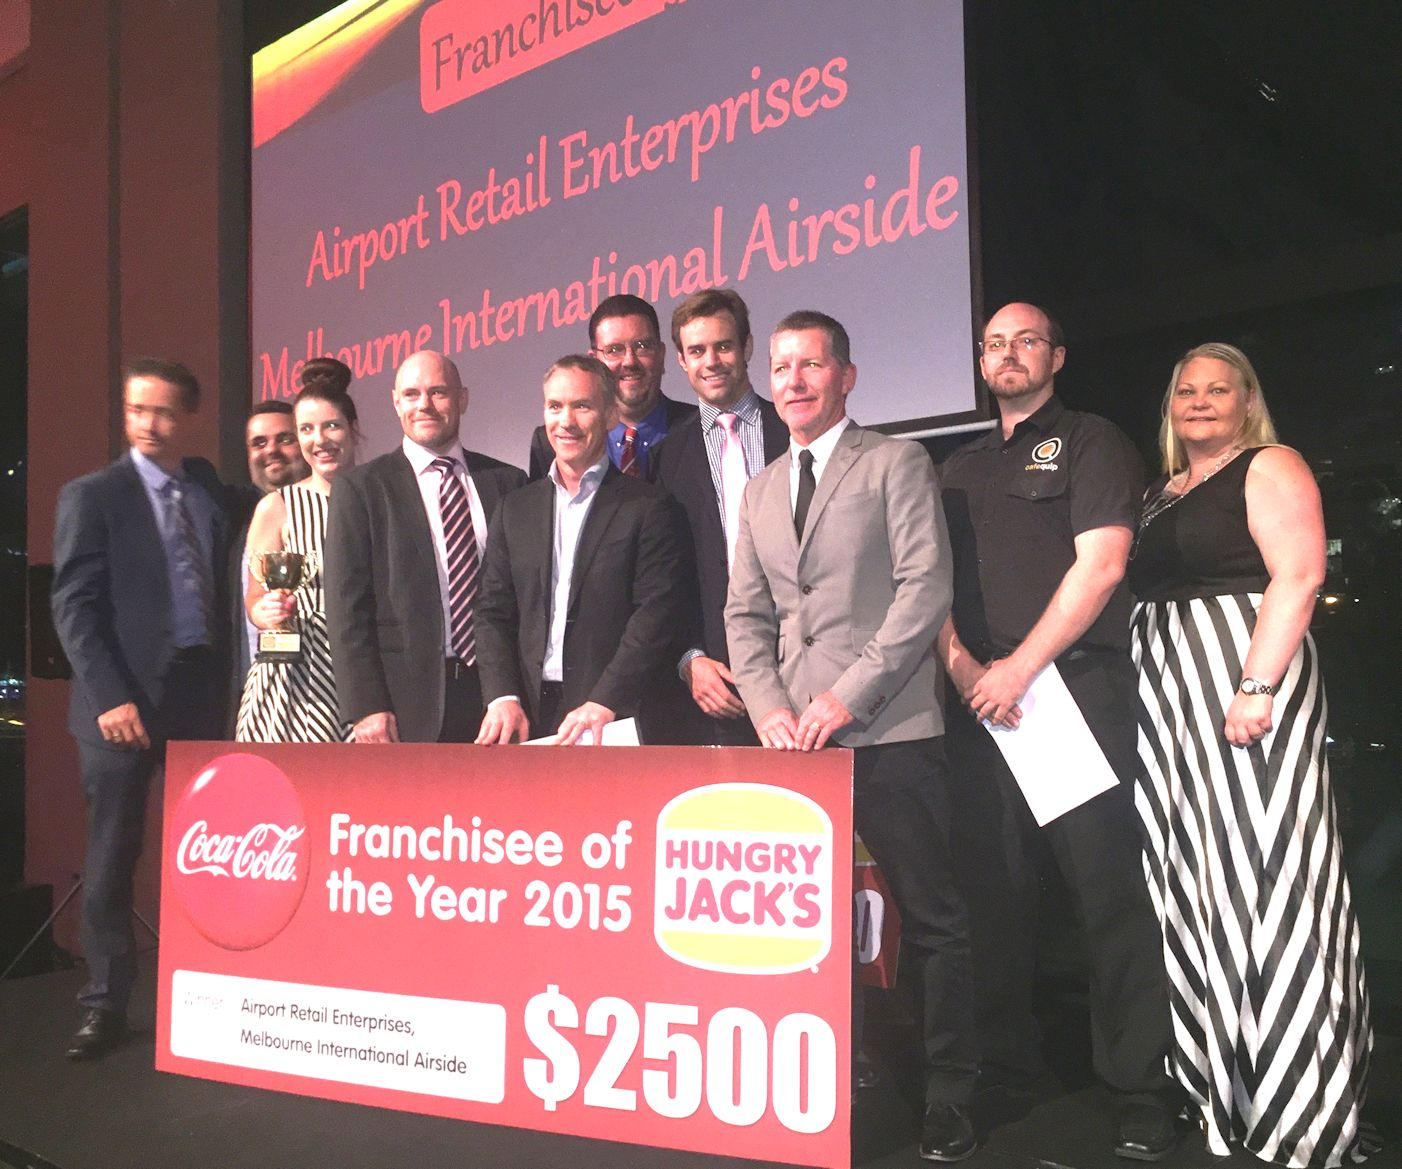 Hungry Jacks franchise of the year